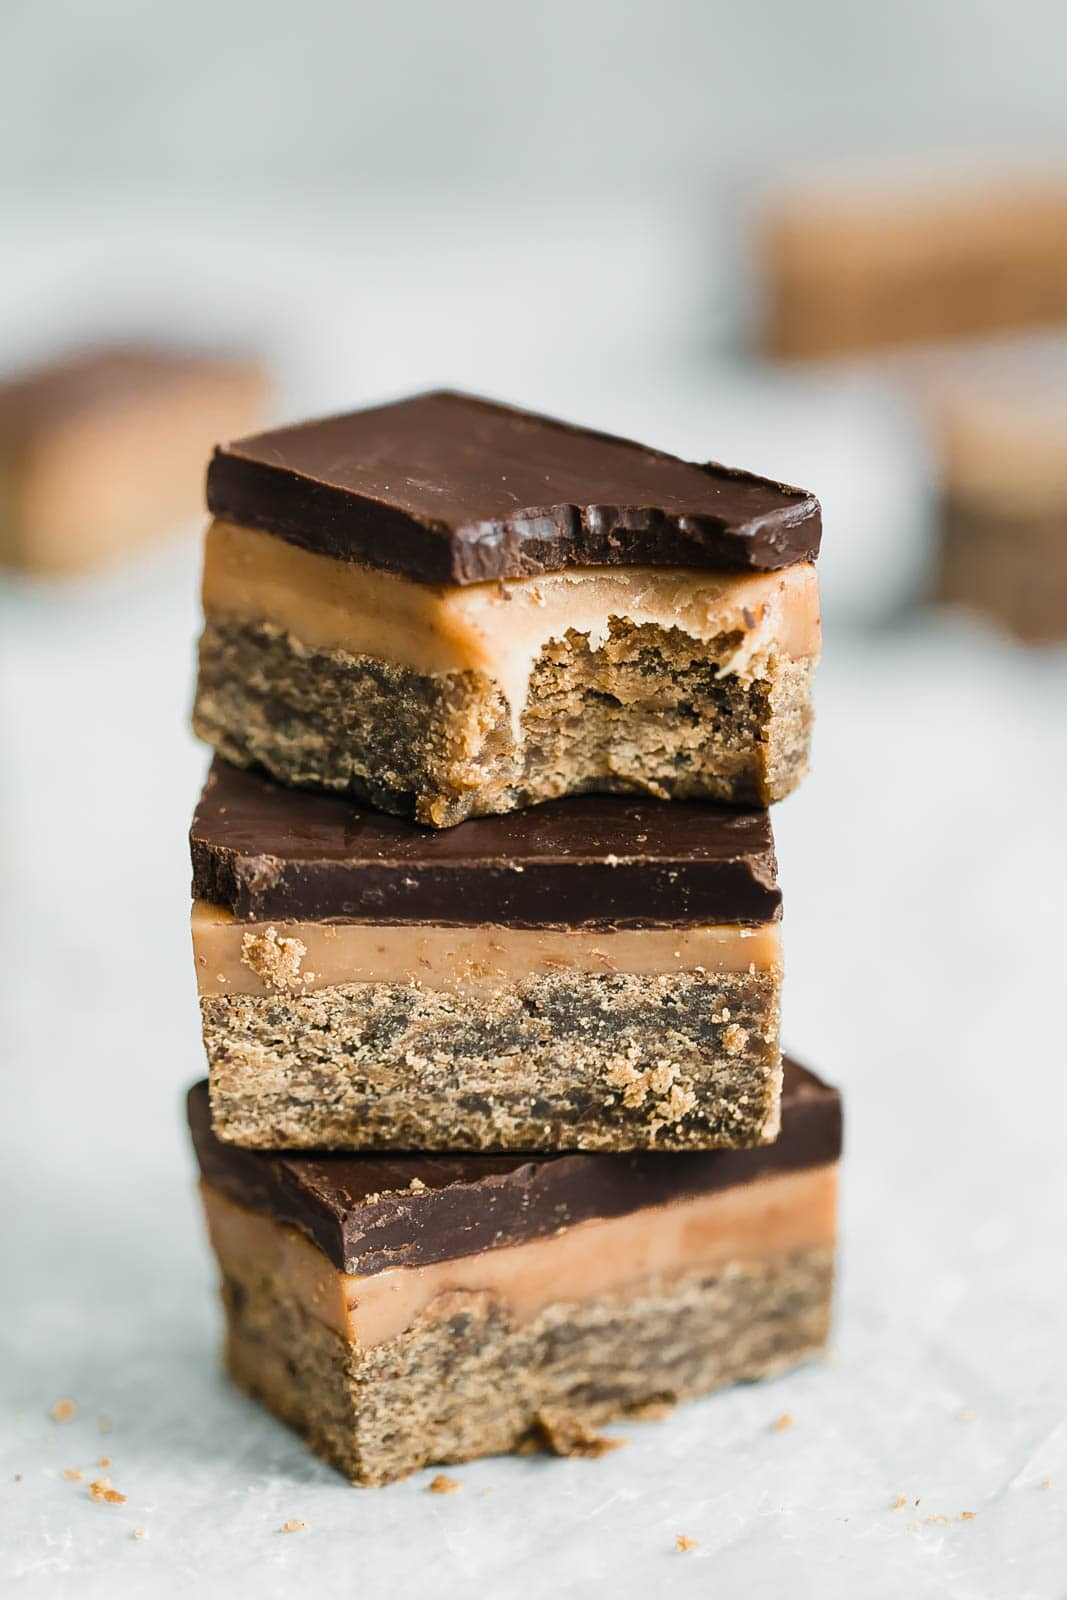 Classic Millionaire Bars get a twist with these Gingerbread Millionaire Bars! Made with spiced ginger shortbread, homemade chewy caramel, and chocolate!